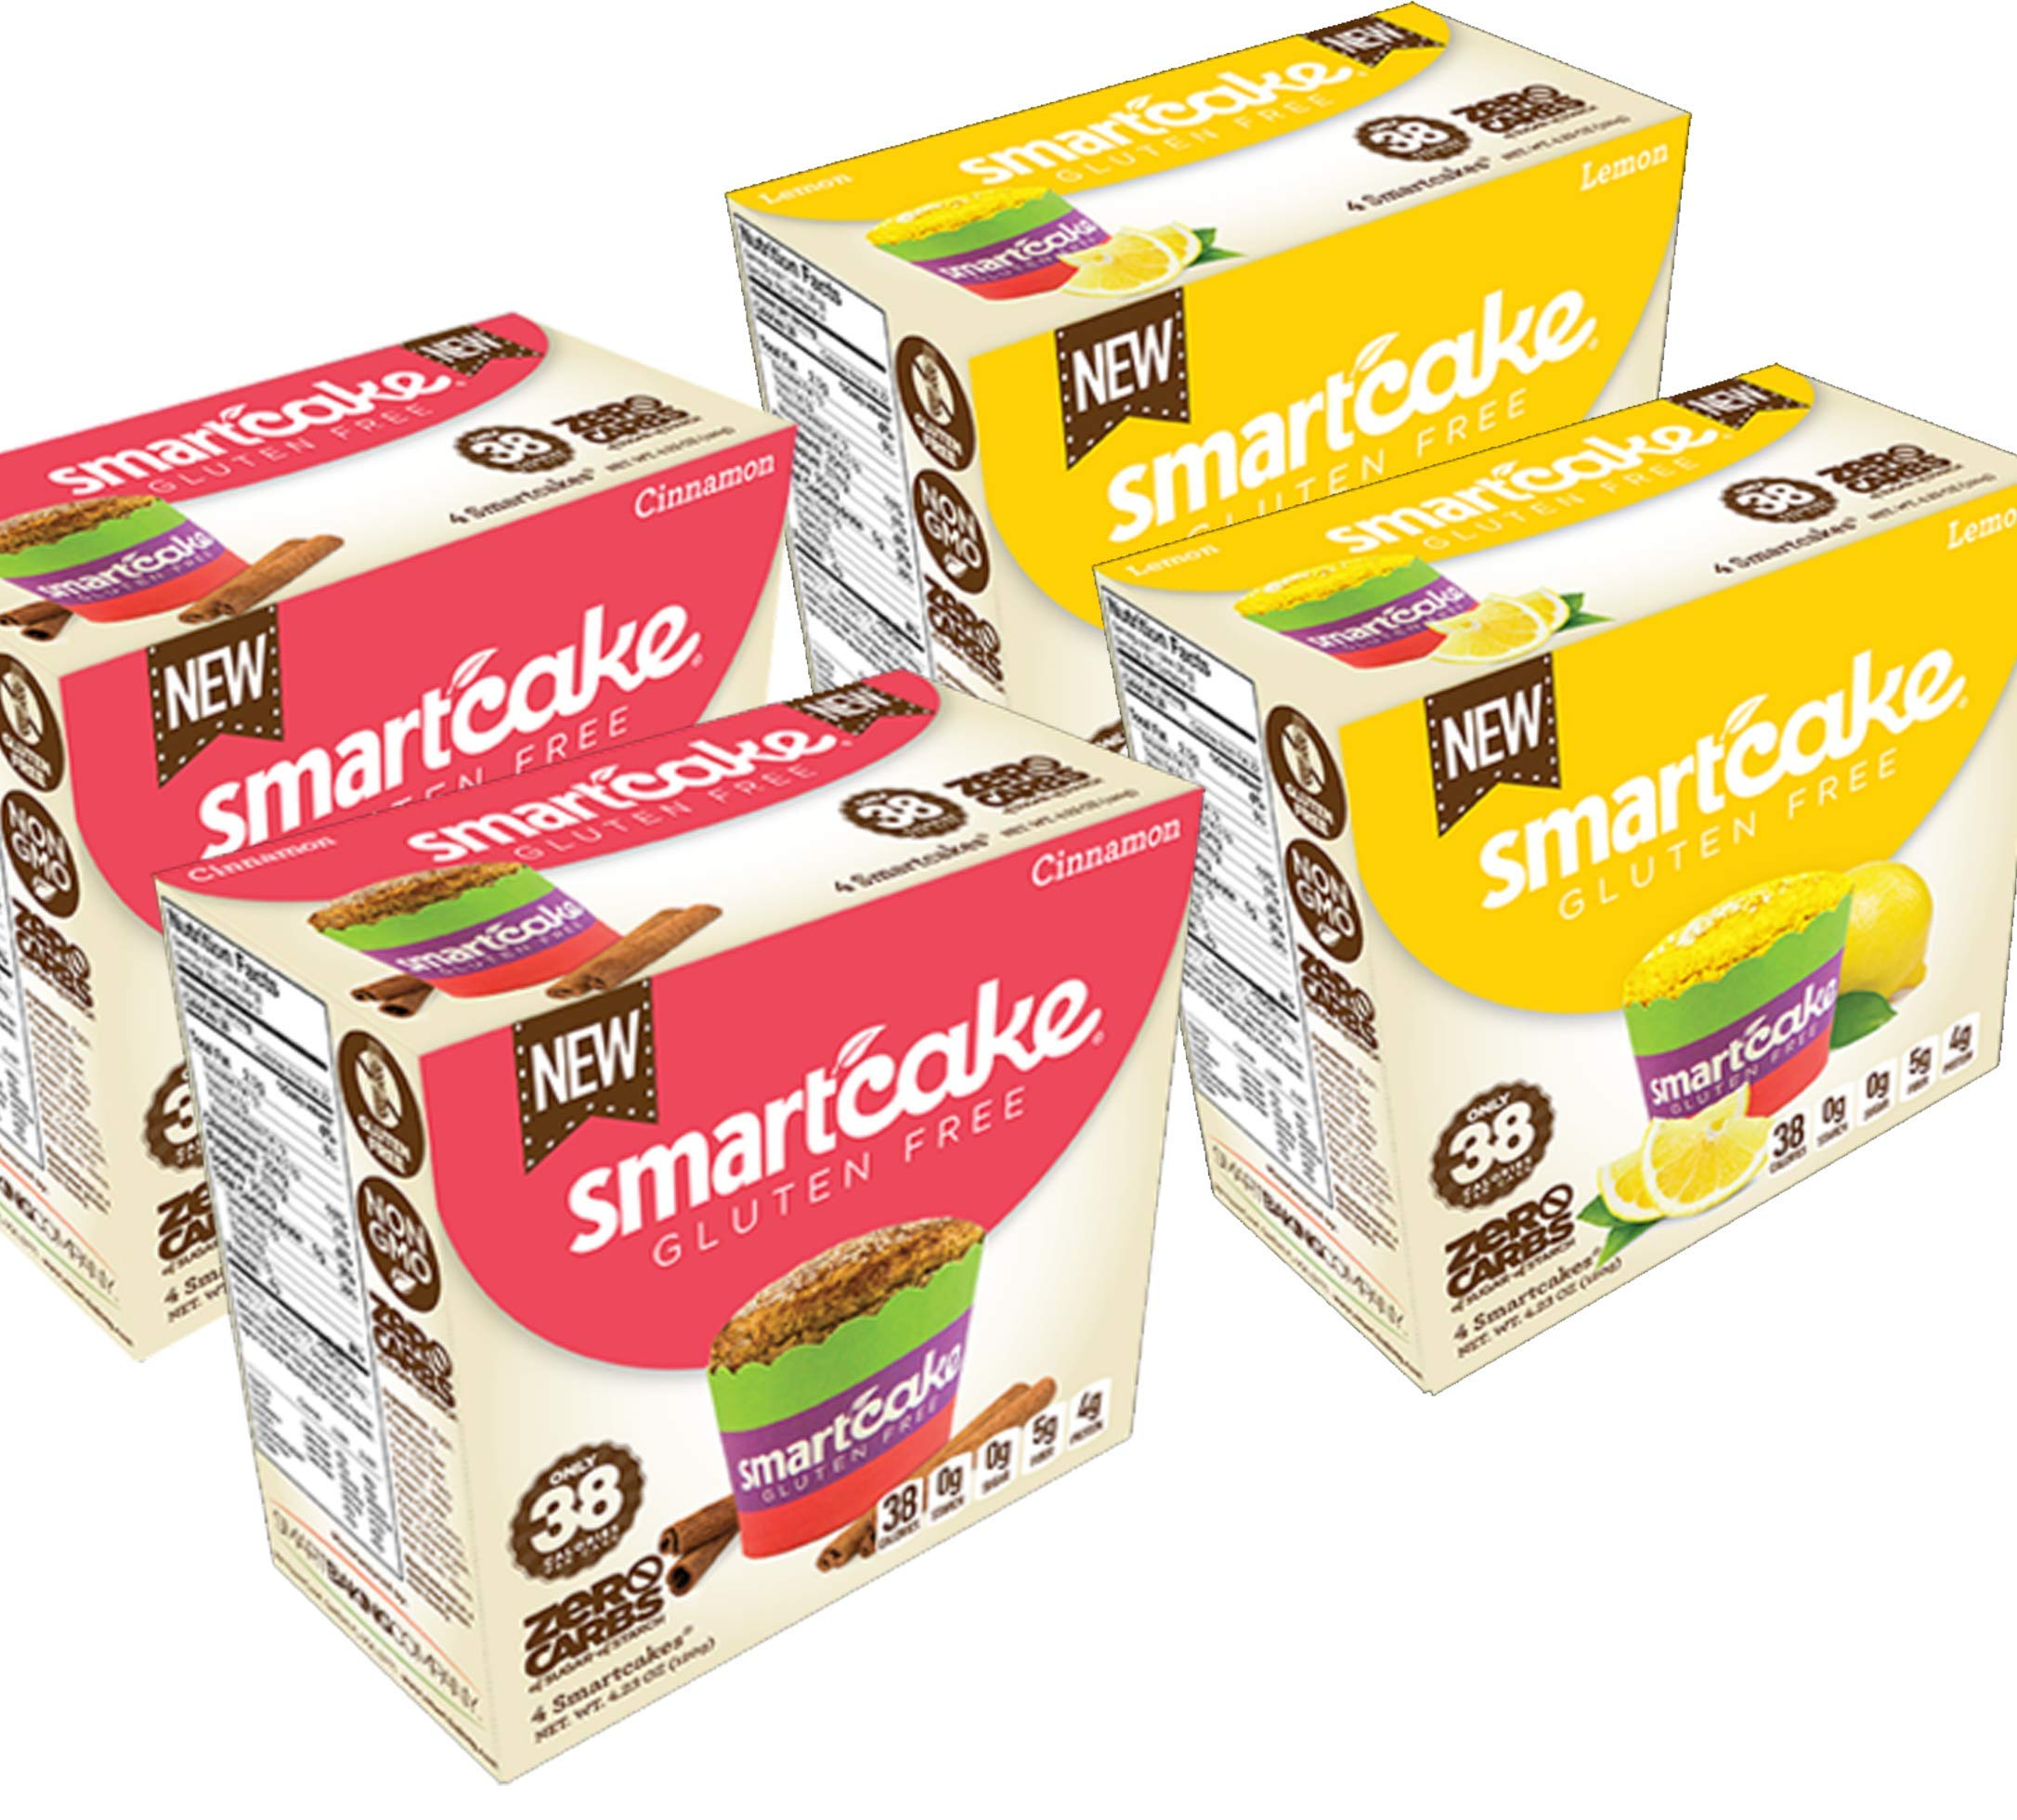 SMARTCAKE BUNDLE: 2x LEMON GOURMET BOXES AND 2x CINNAMON GOURMET BOXES: GLUTEN FREE, SUGAR FREE, LOW CARB SNACK CAKES: 8x twin packs (16 individual cakes)